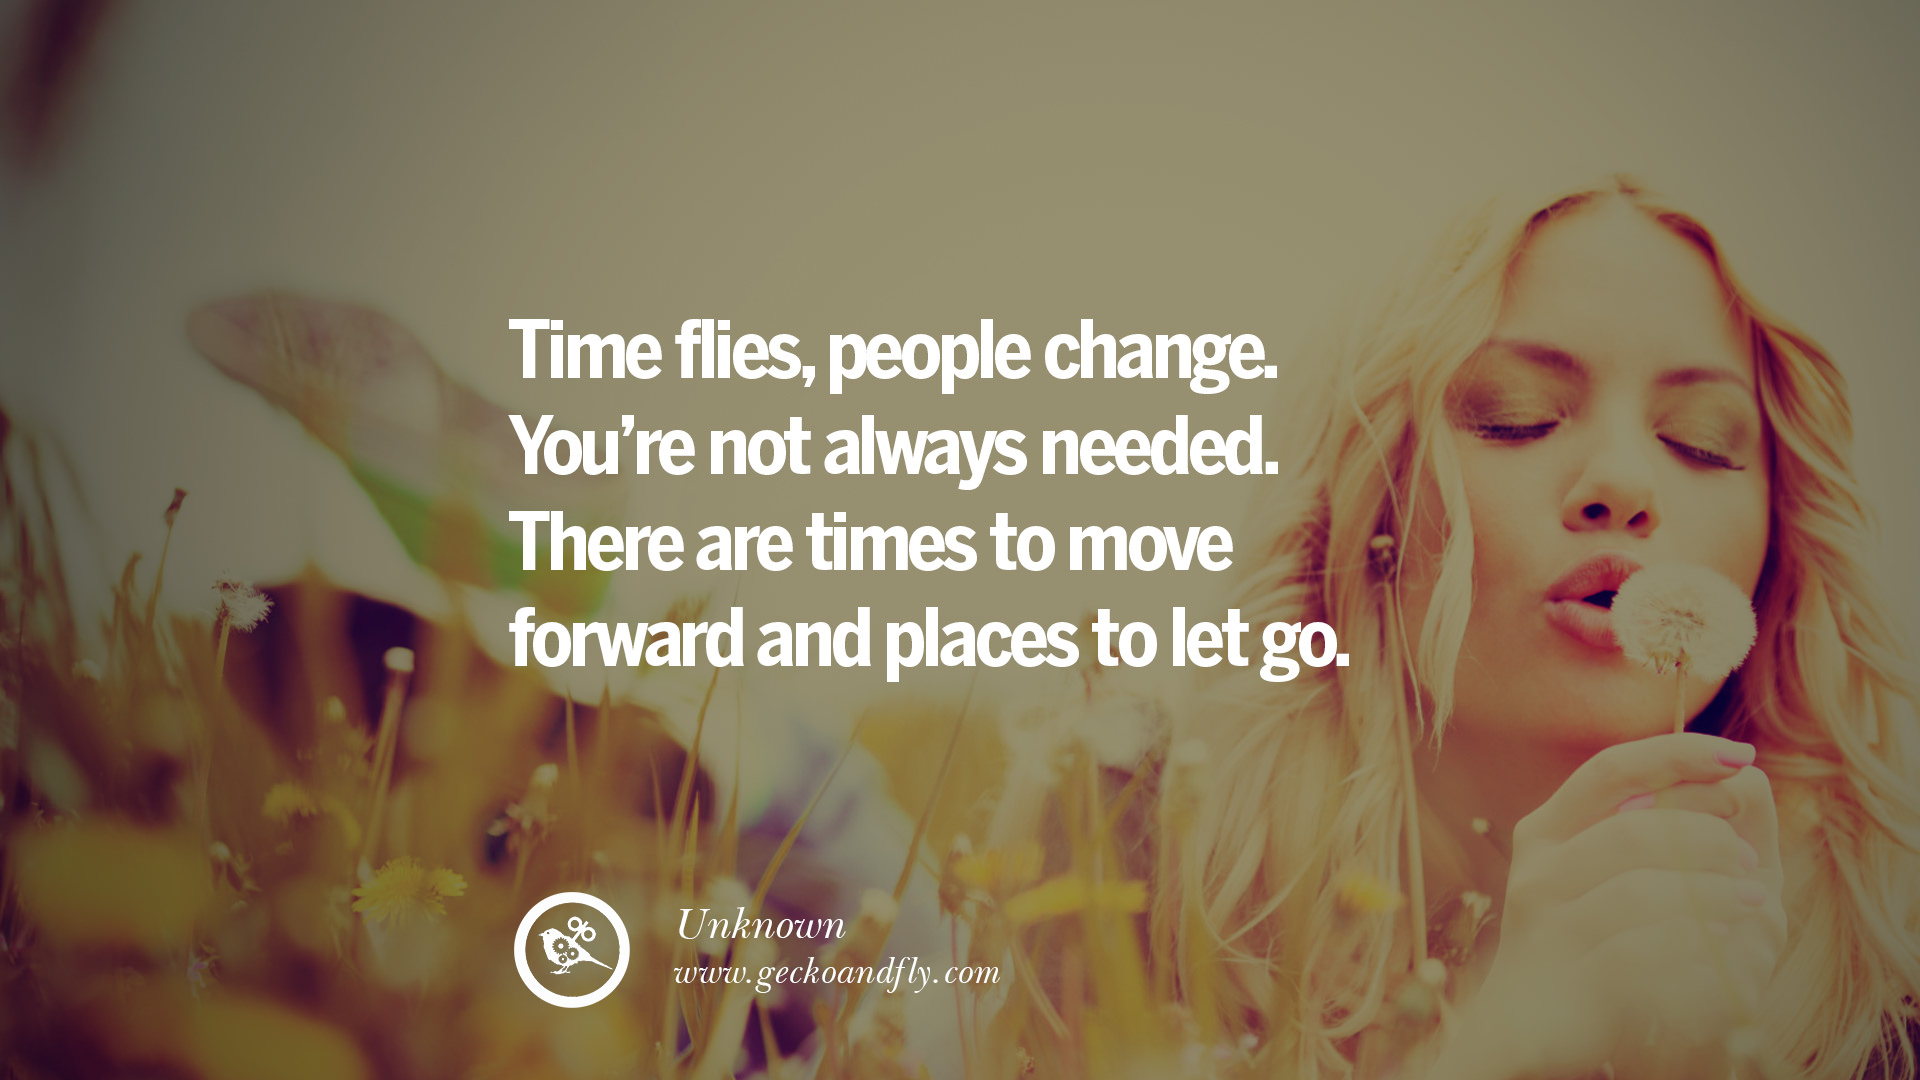 quotes about change and moving forwardQuotes About Change And Moving Forward